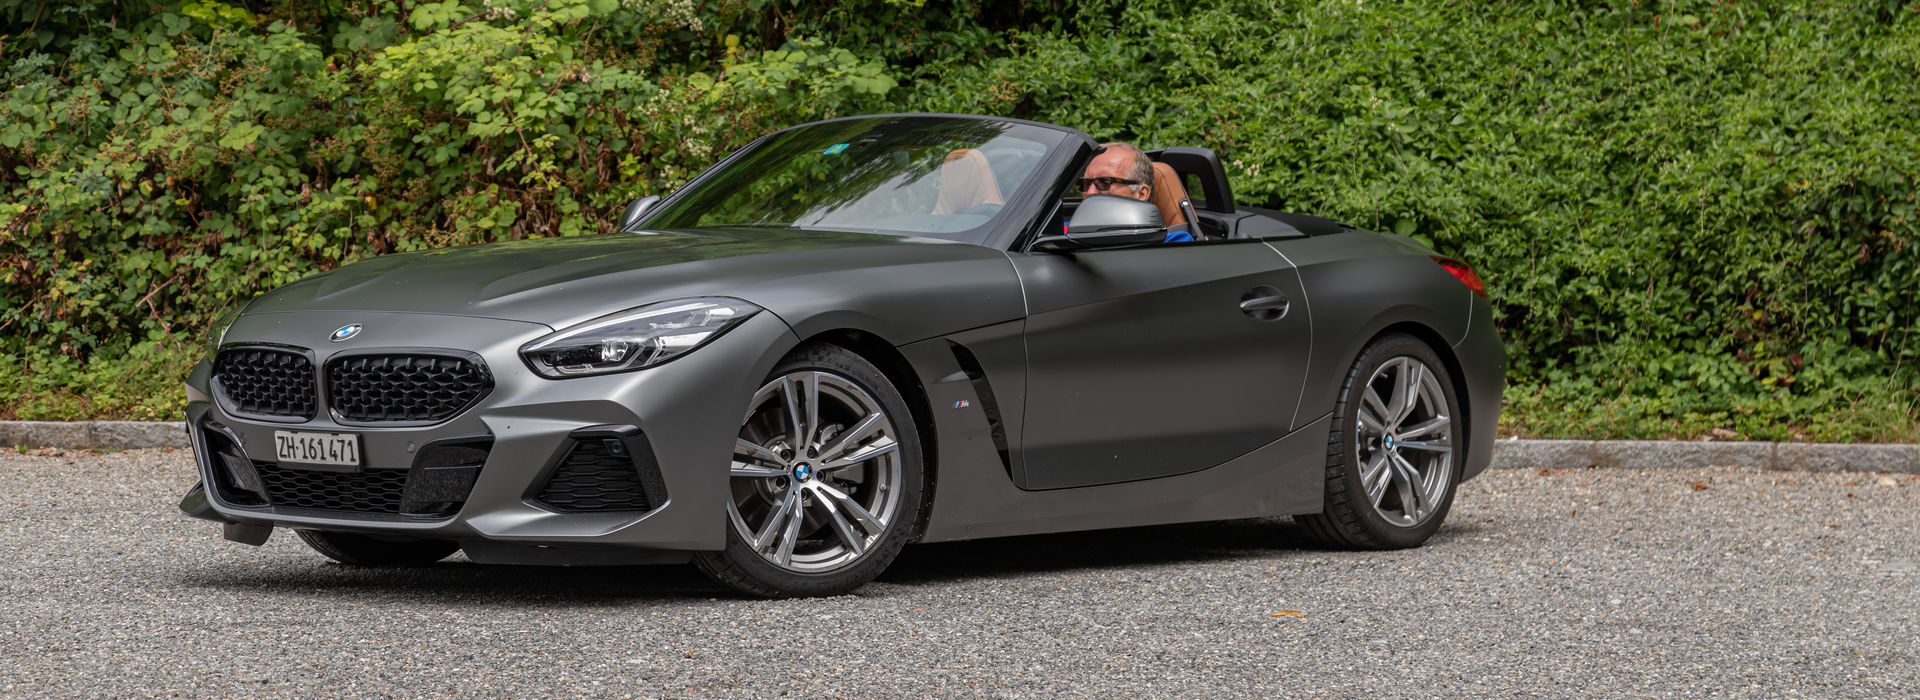 Test BMW Z4 Sdrive 20i